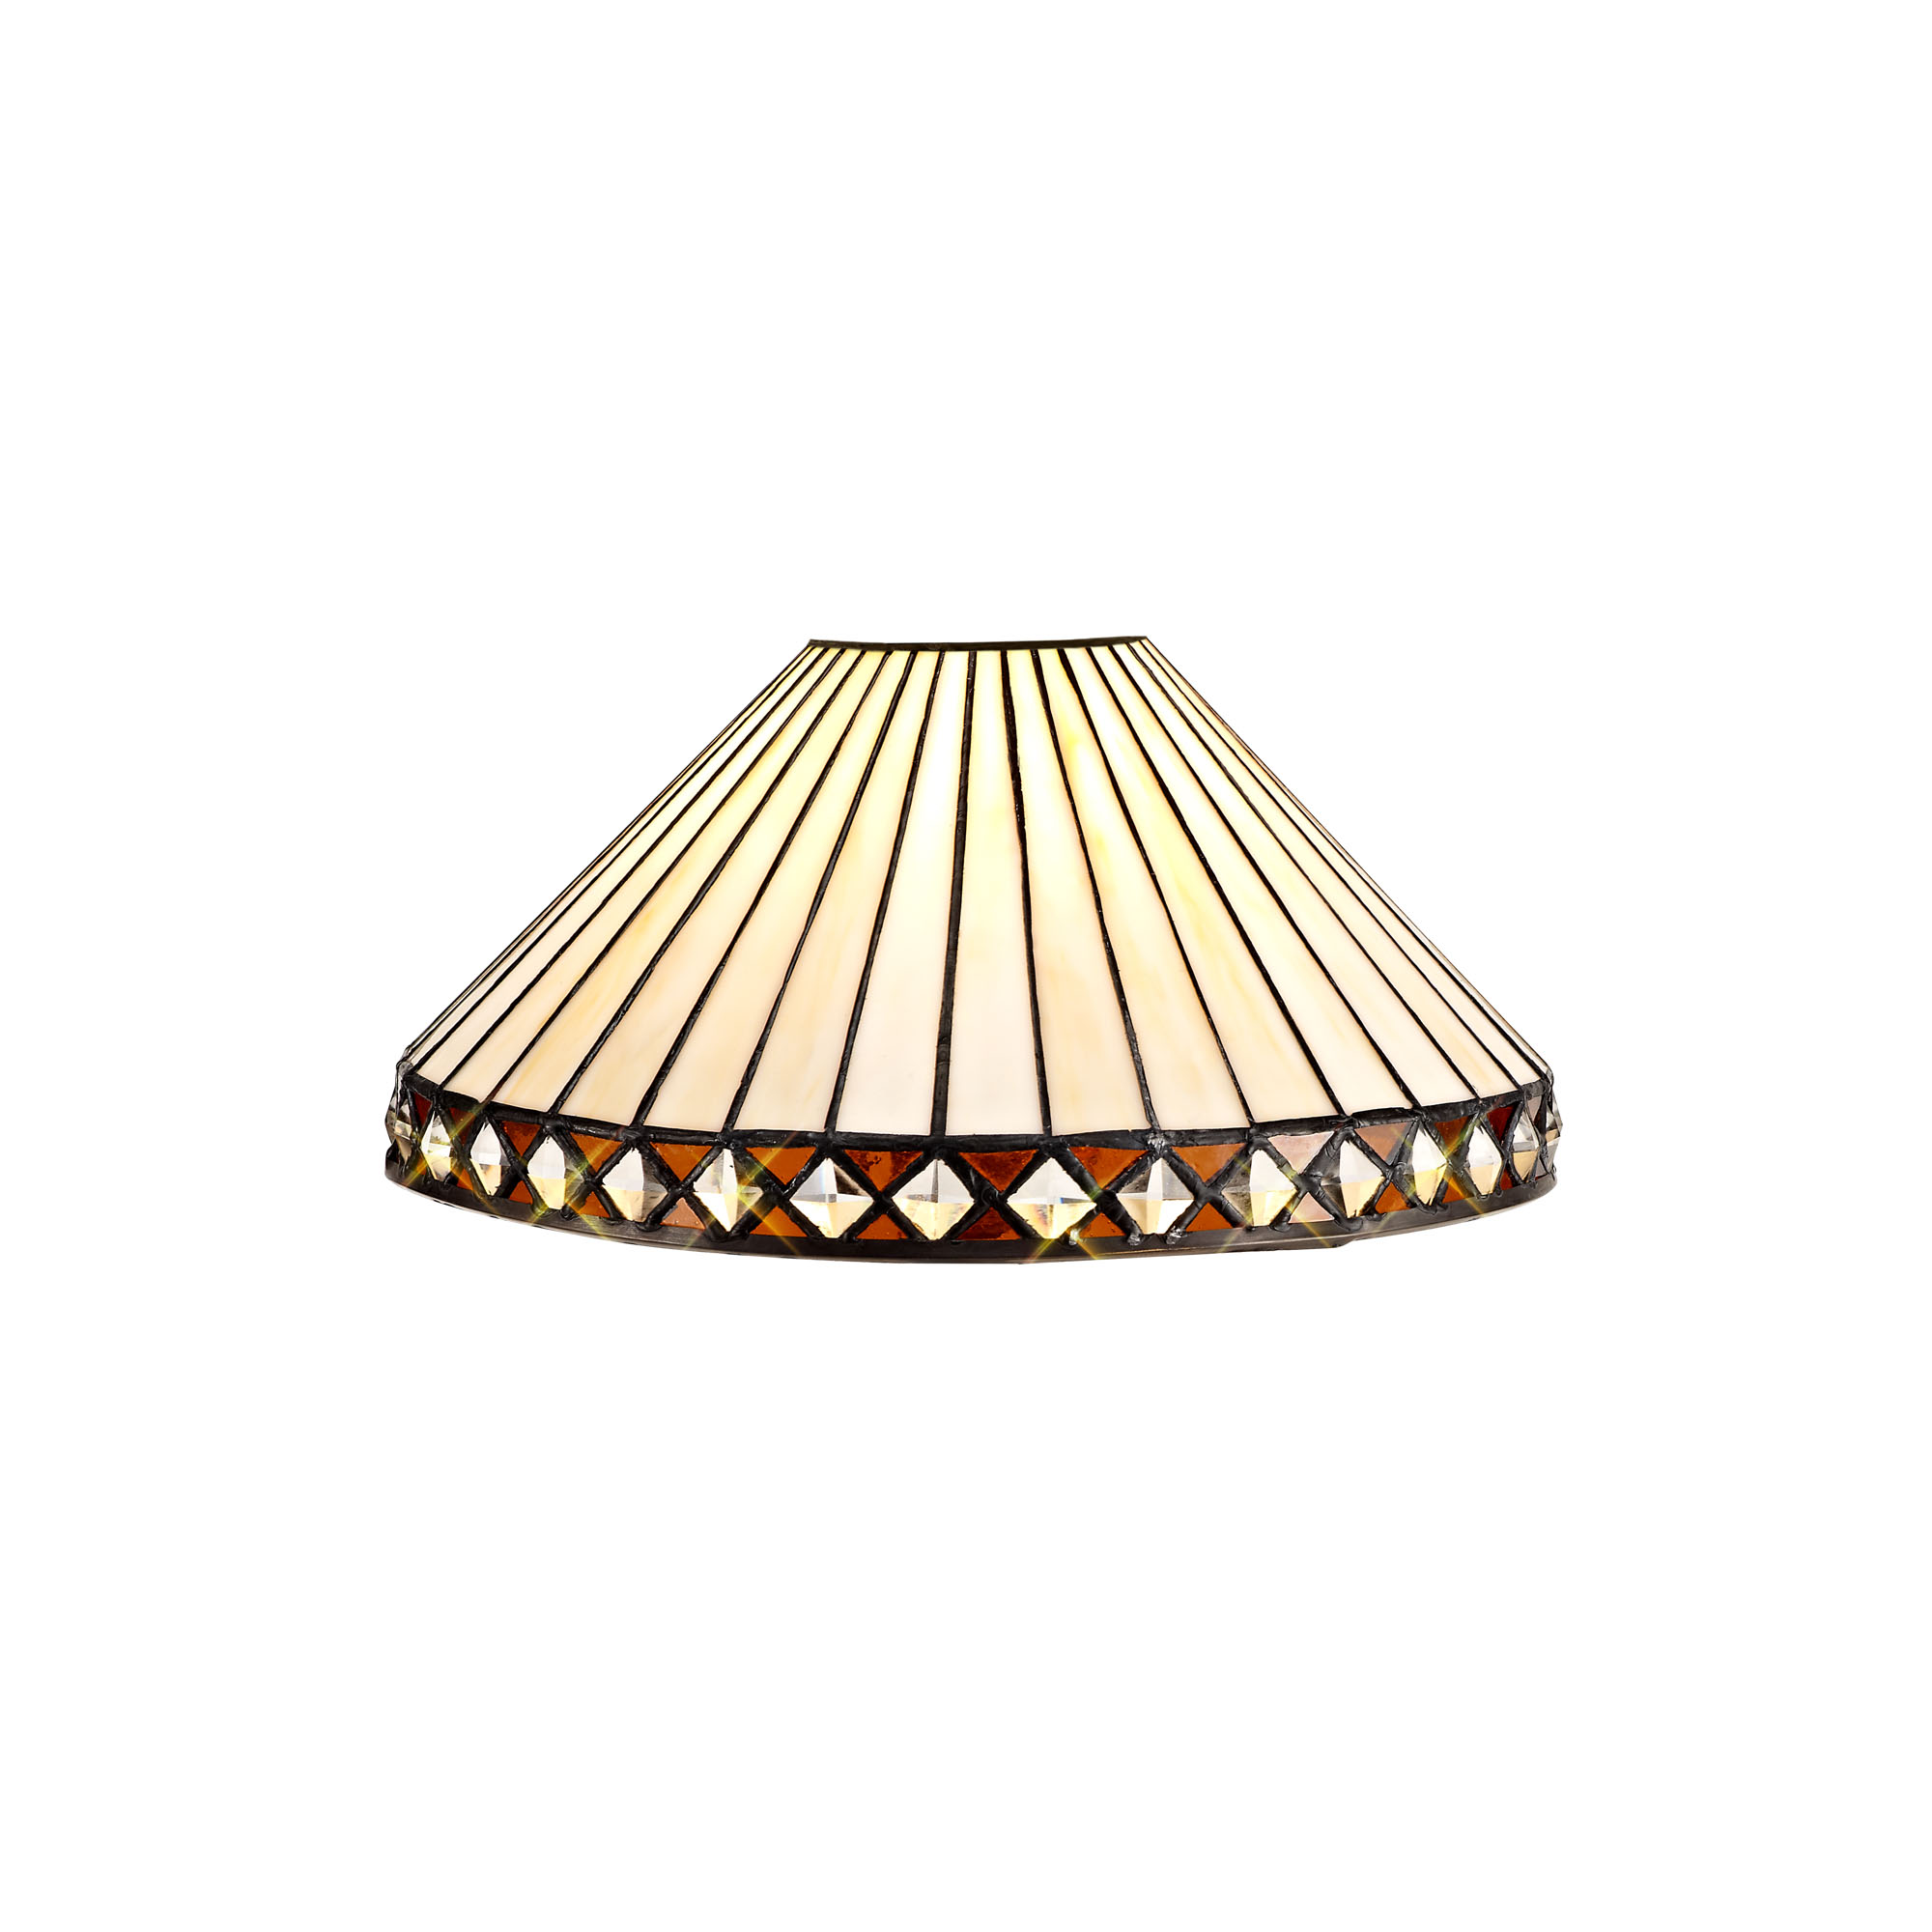 1 Light Downlighter Pendant E27 With 30cm Tiffany Shade, Amber/C/Crystal/Aged Antique Brass